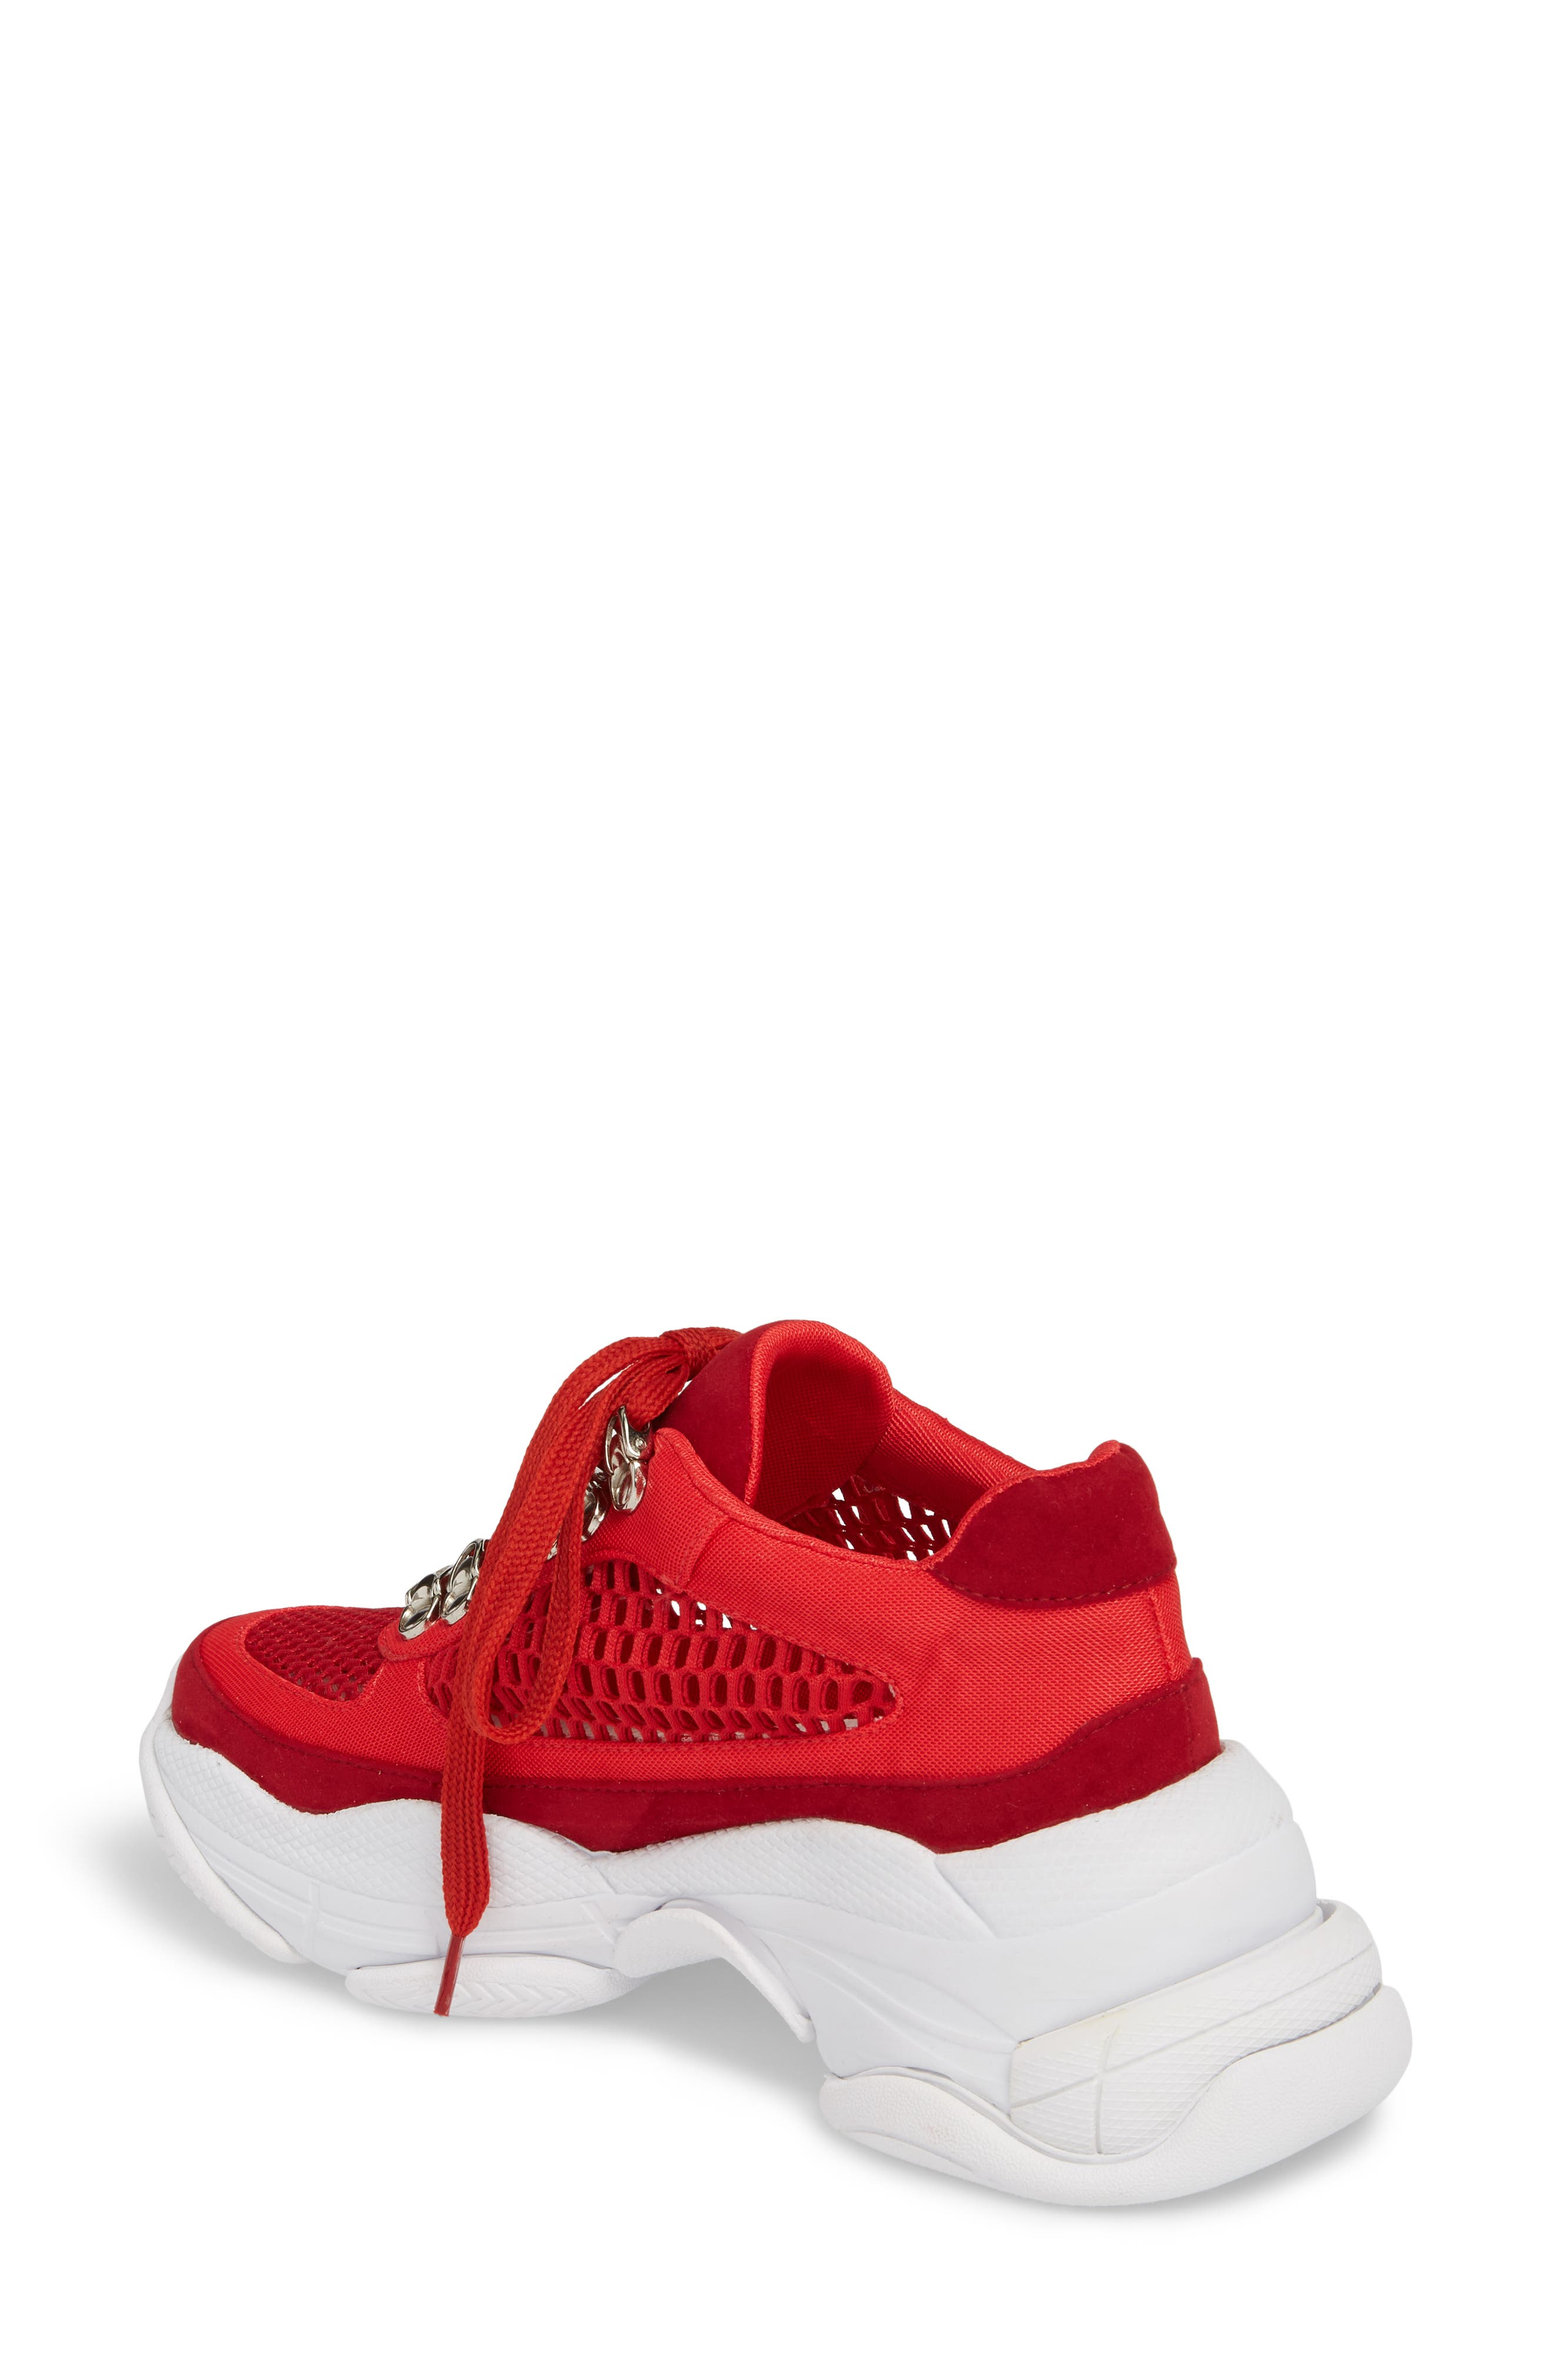 Hotspot Lace-Up Sneaker,                             Alternate thumbnail 2, color,                             Red